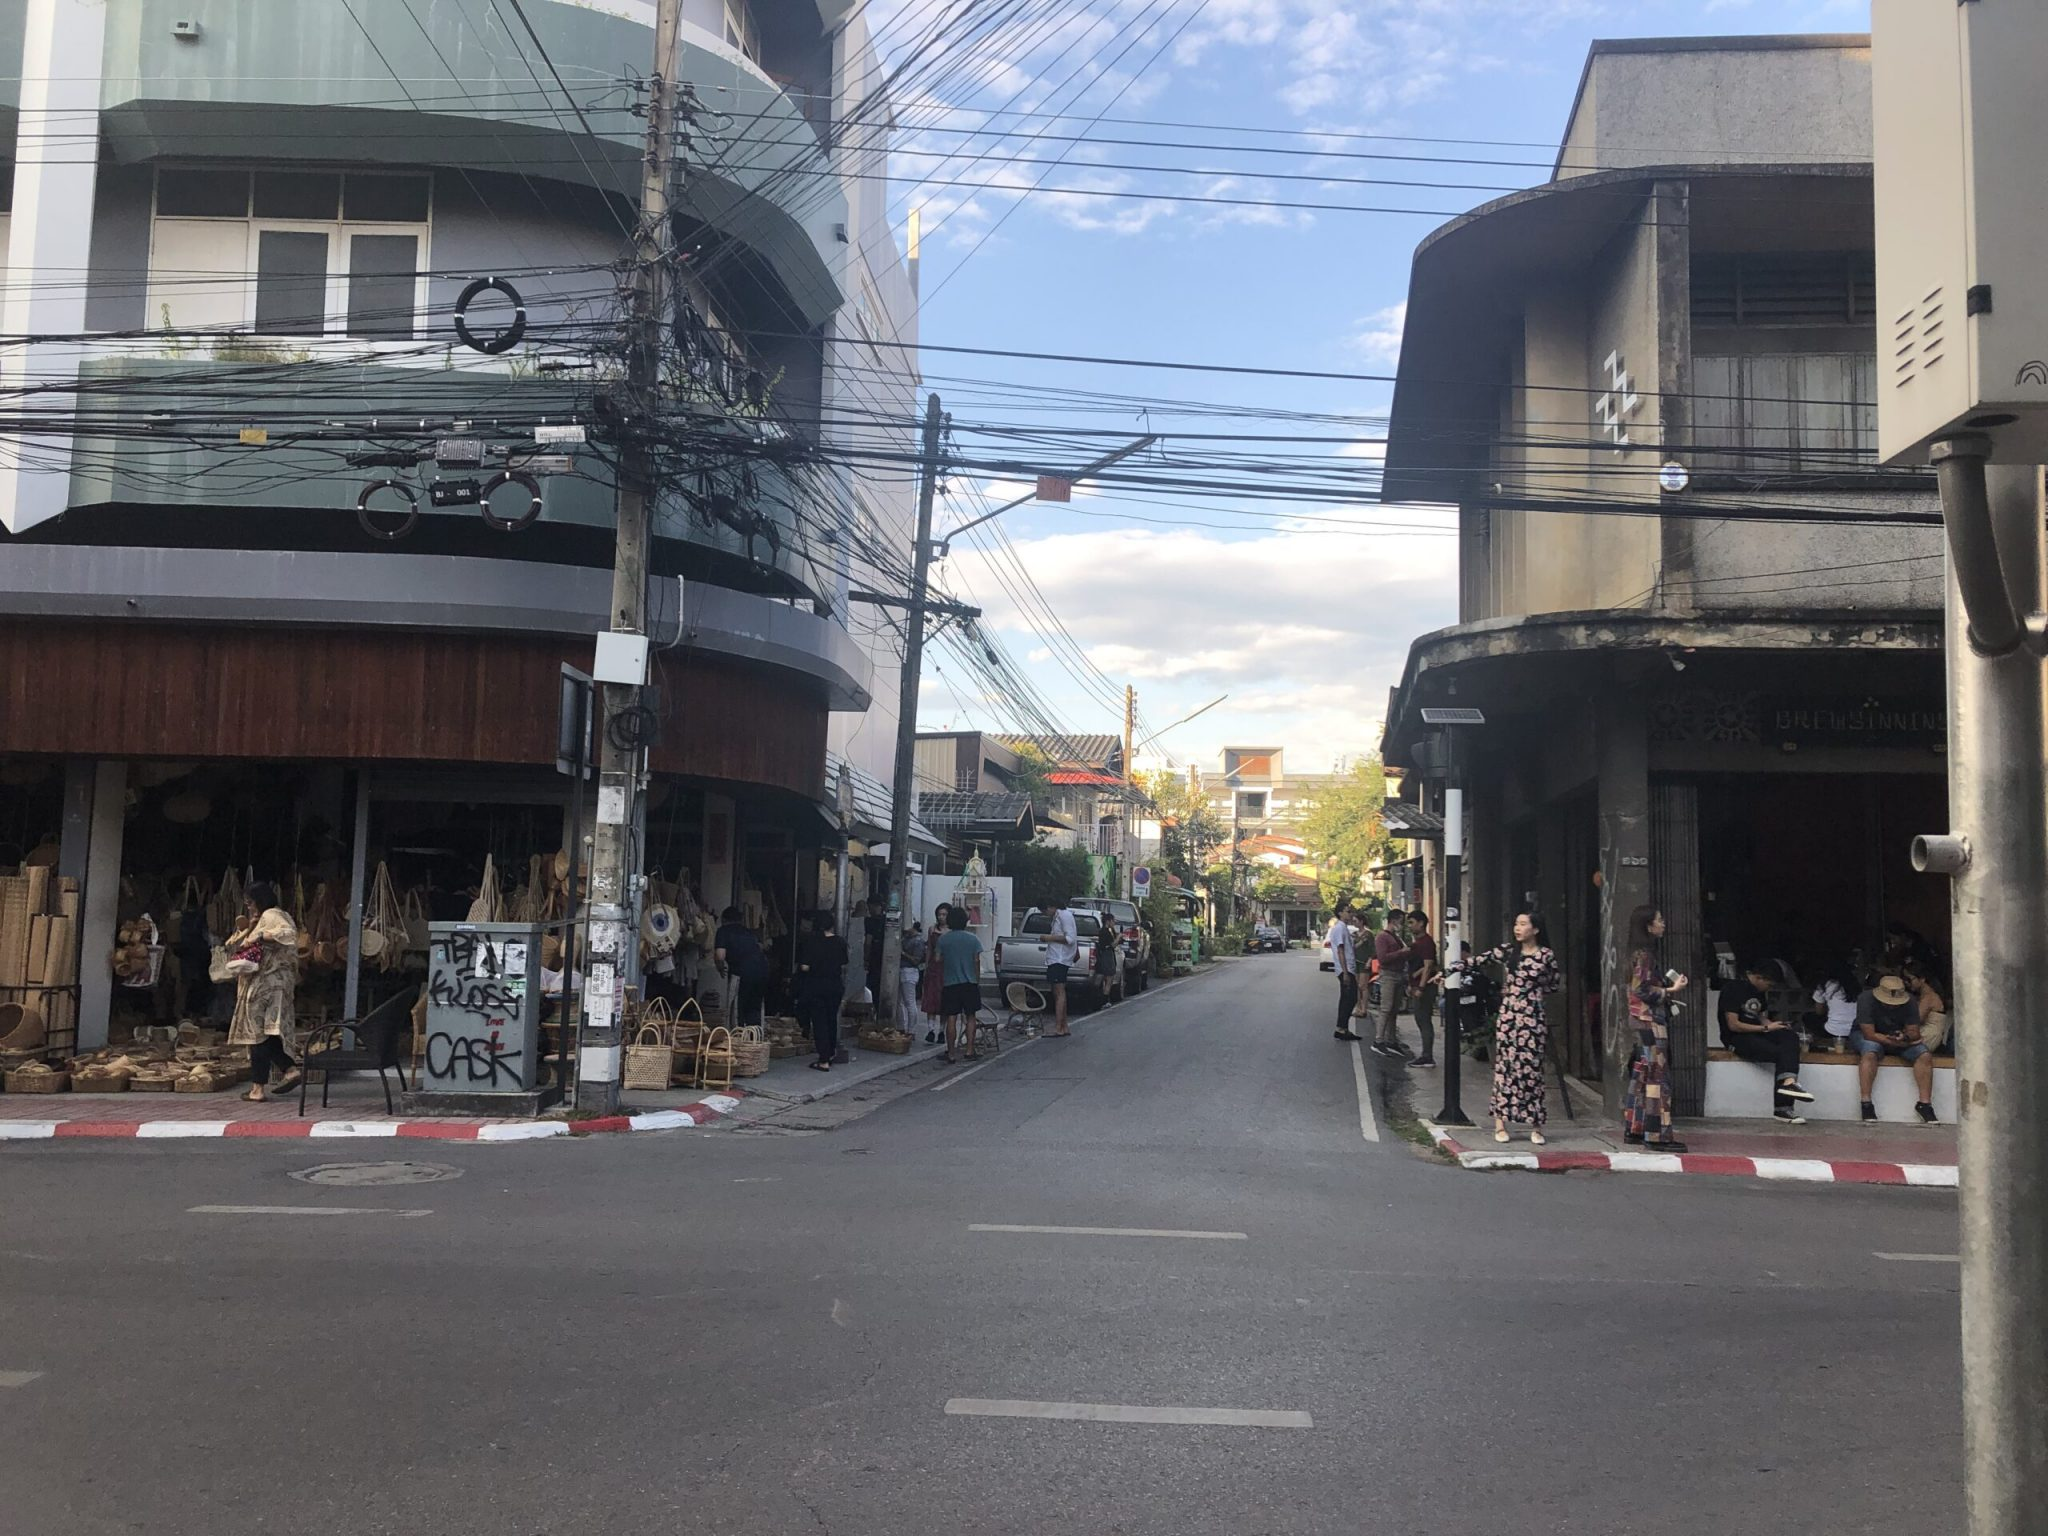 Daytime streets of Chiang Mai